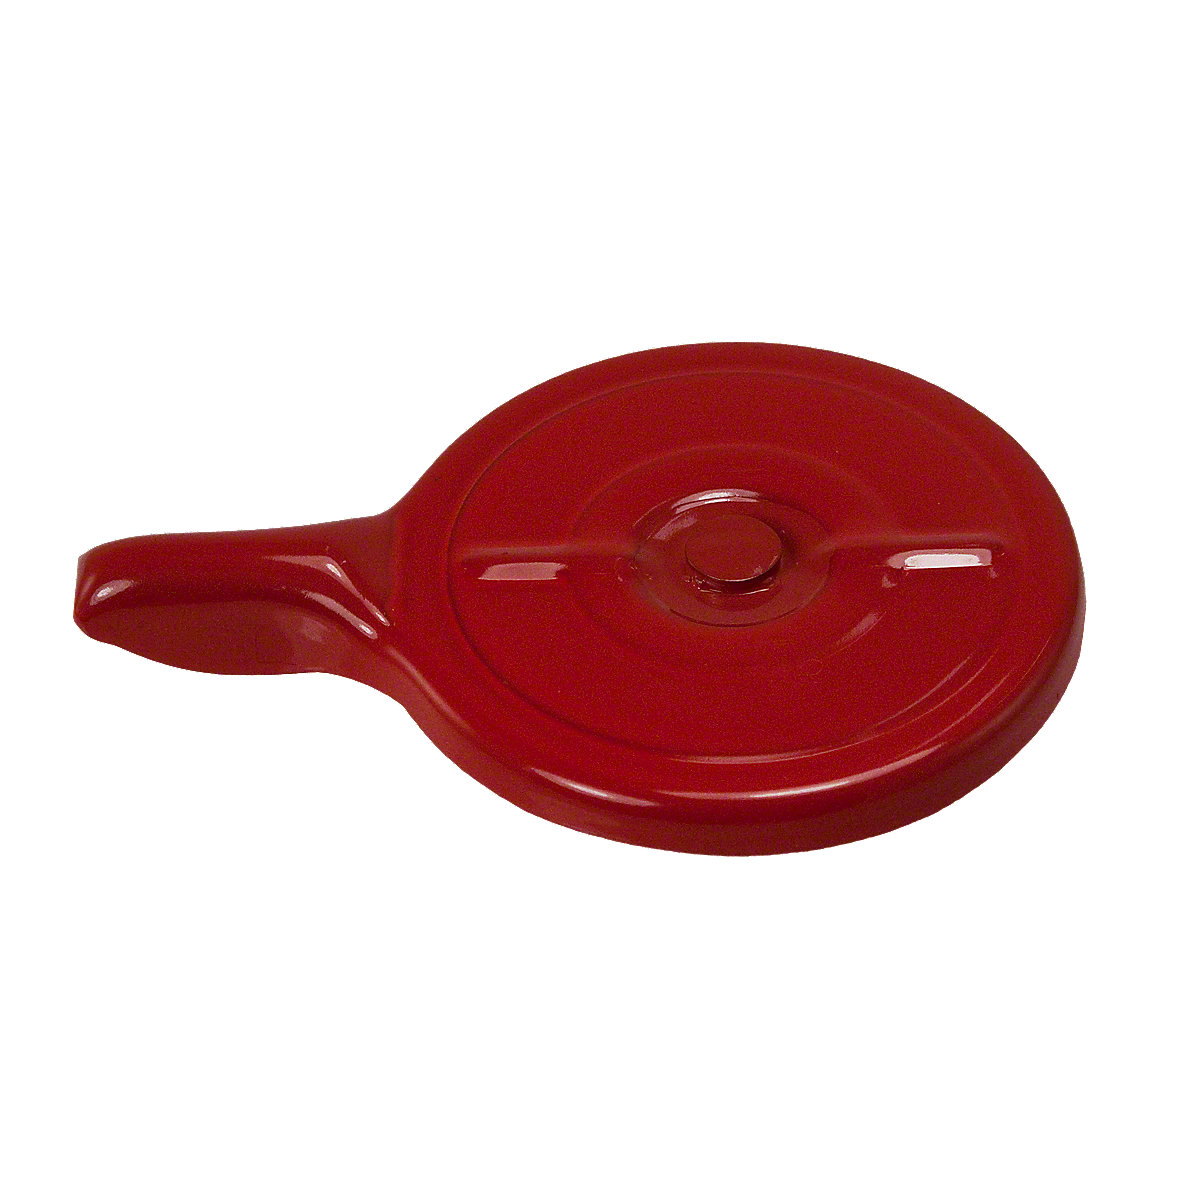 Gas Cap For Allis Chalmers: B, C, CA, G, WD, IB, WC, WD45, WF.